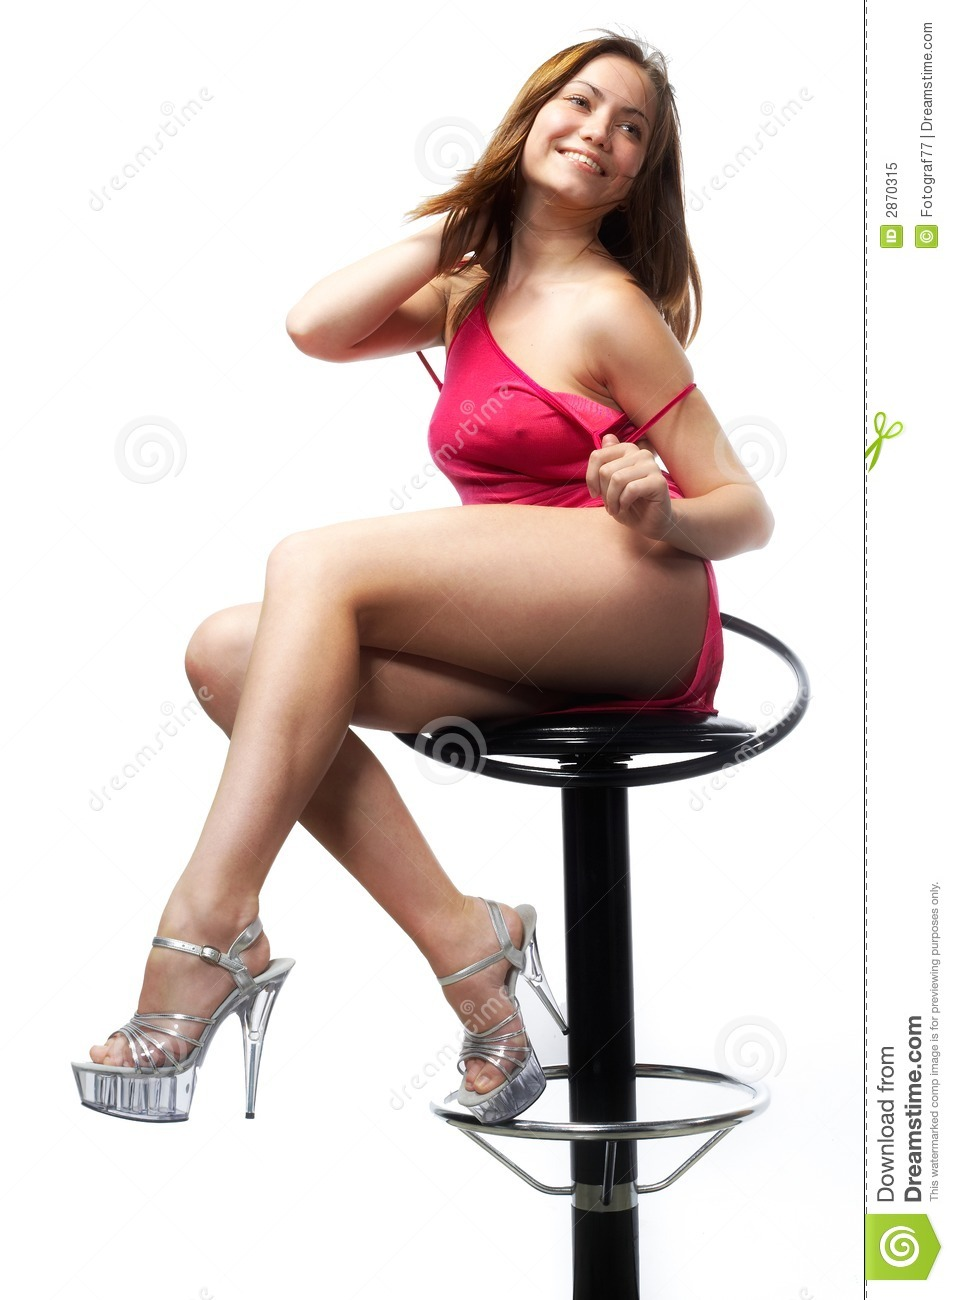 stool bar Girl on